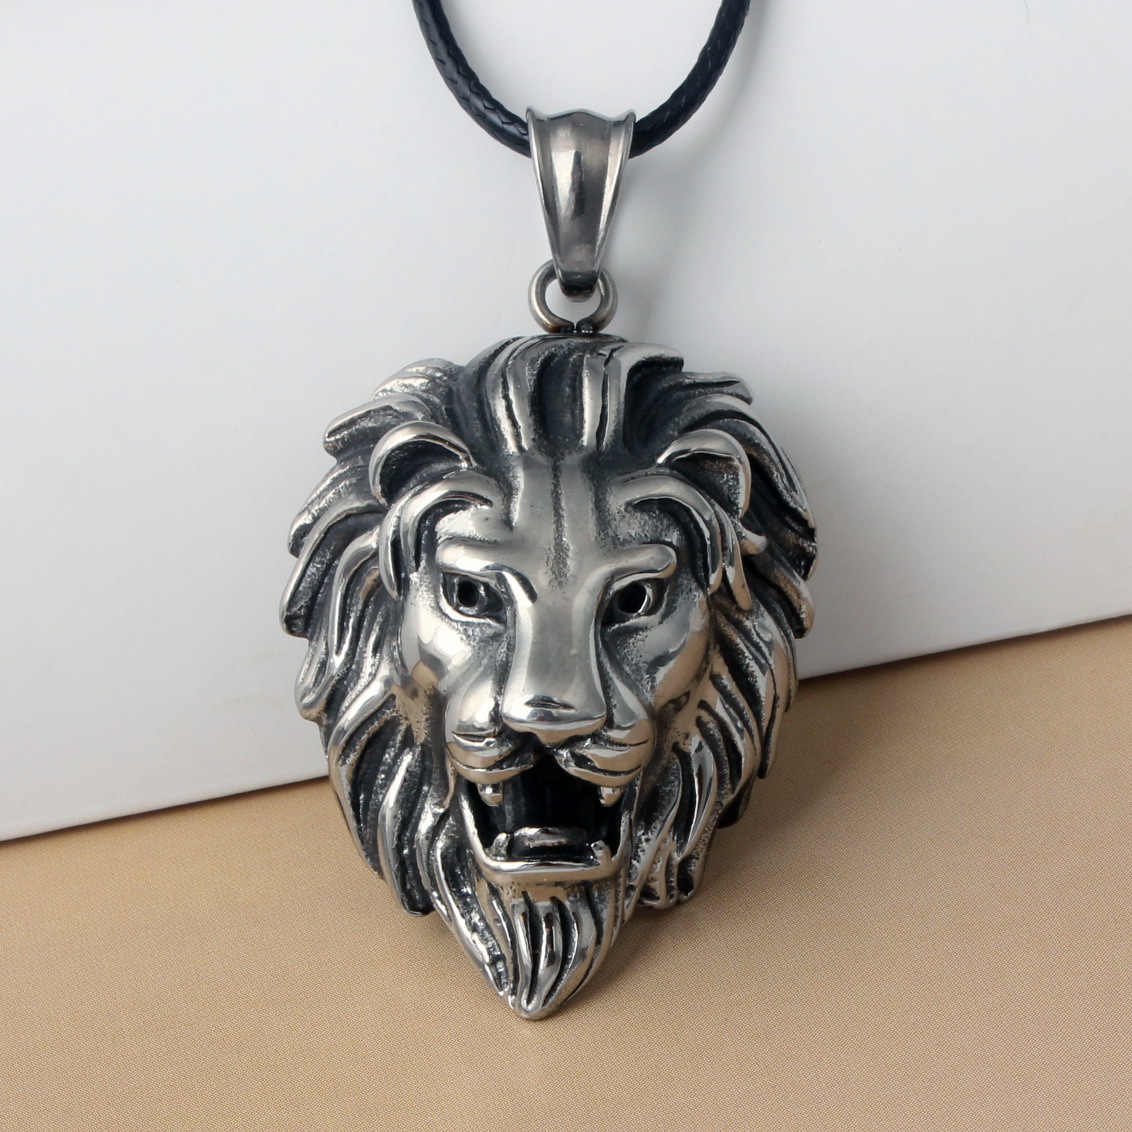 HOMOD Hip Hop Big Lion Head Pendant & Necklace Animal King Vintage Stell Color Hiphop Rope Chain For Men Women Jewelry Gift